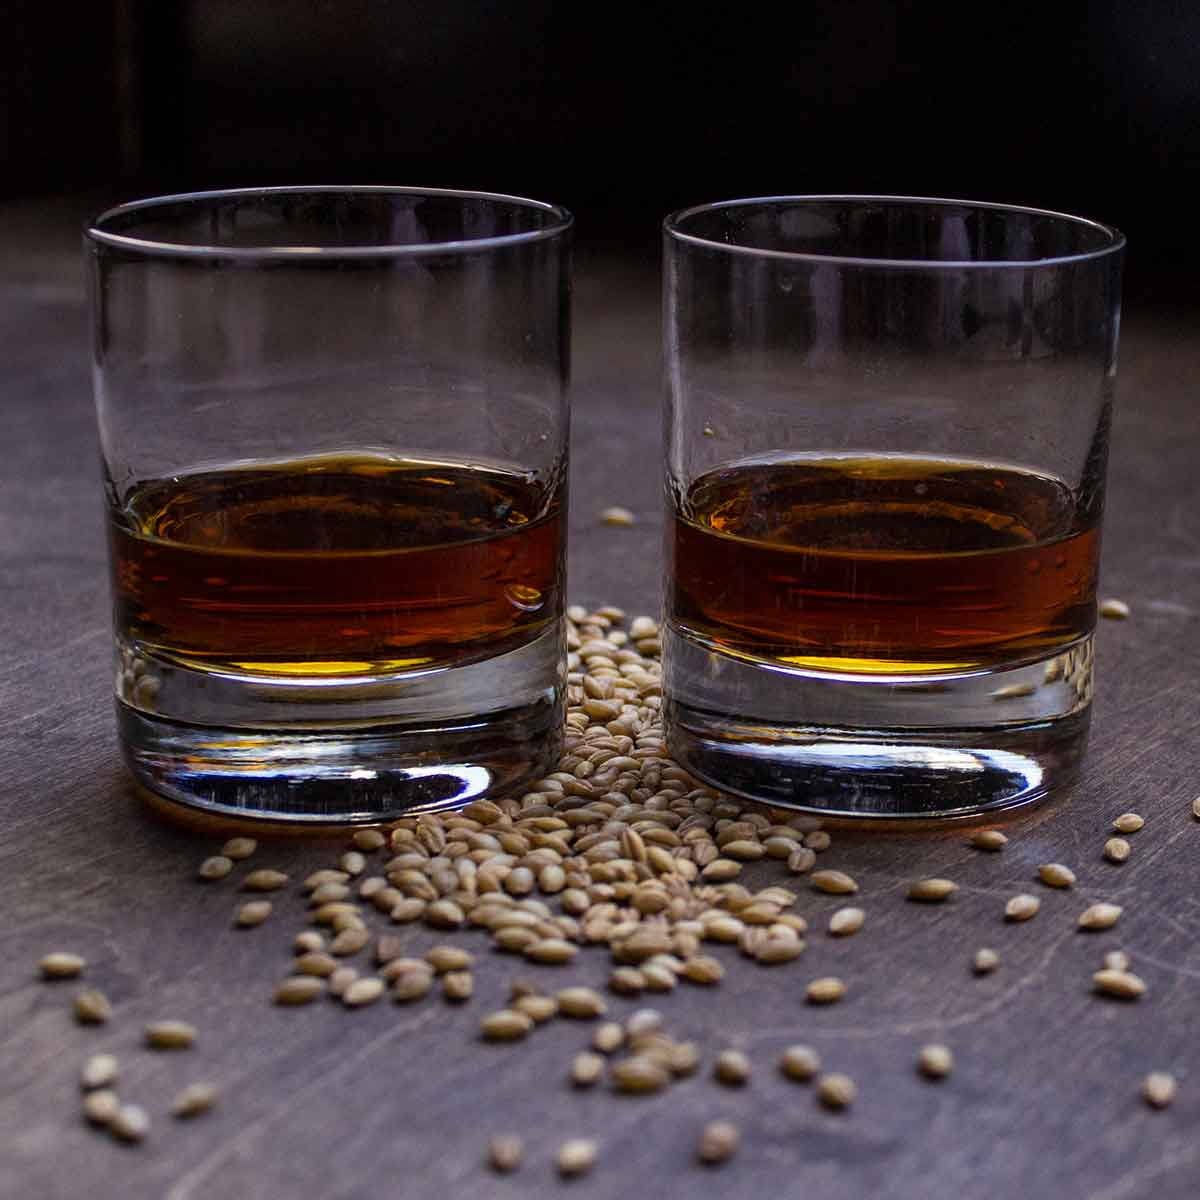 The Origins of Flavor in Scotch Whisky